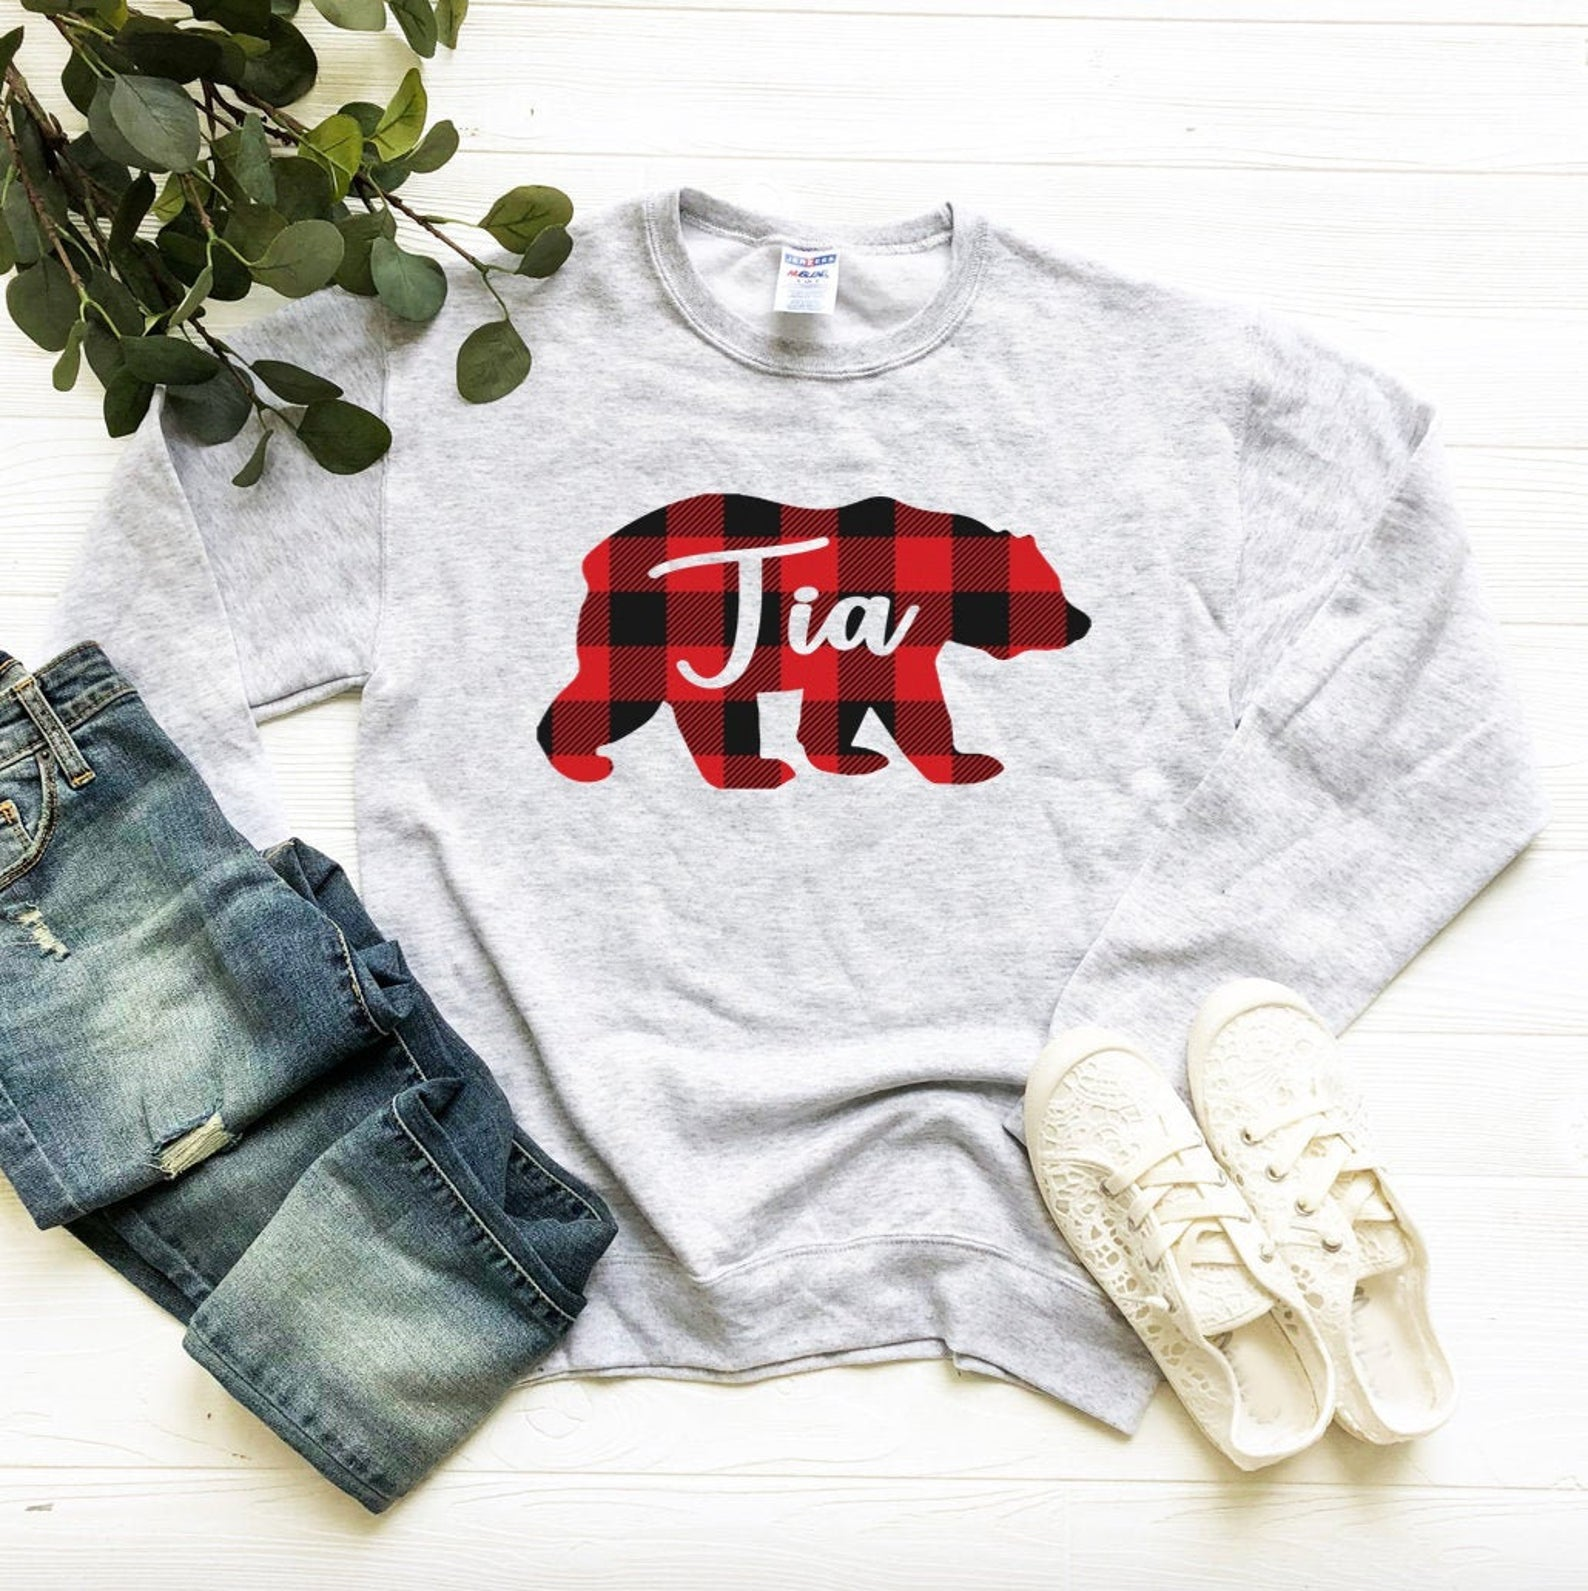 Tia Bear Plaid Unisex Sweatshirt - Tia Sweatshirt - Crew Neck Sweatshirt - Buffalo Check Plaid - Tia Christmas Fleece Sweatshirt